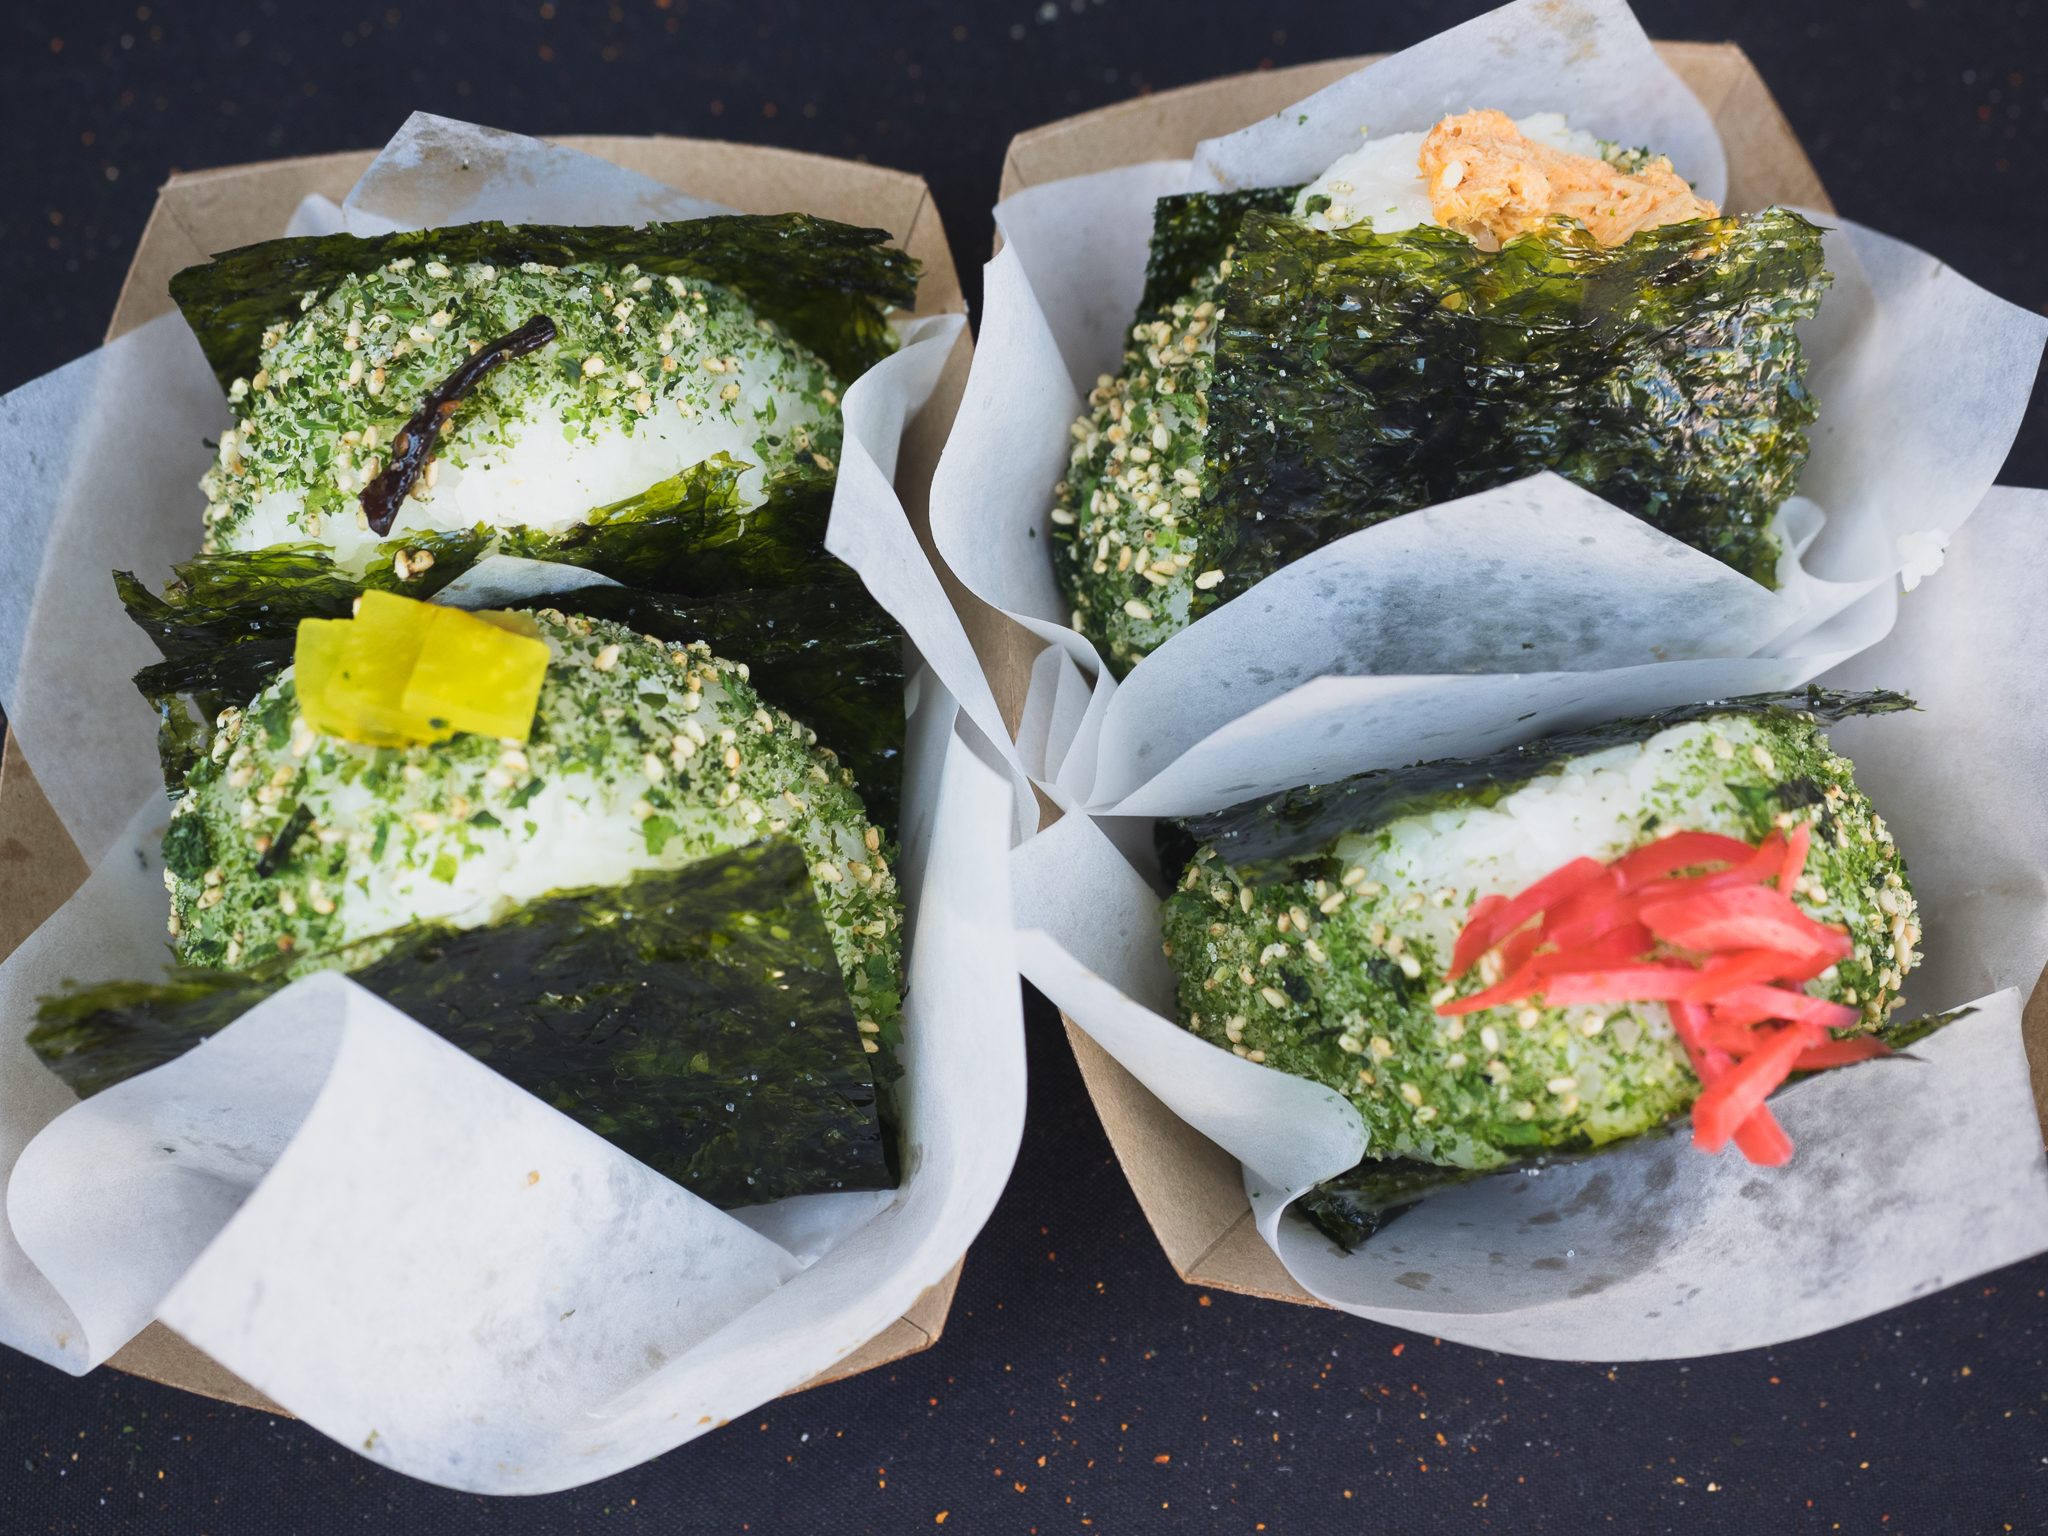 kelp, unagi, spicy tuna and beef musubis.